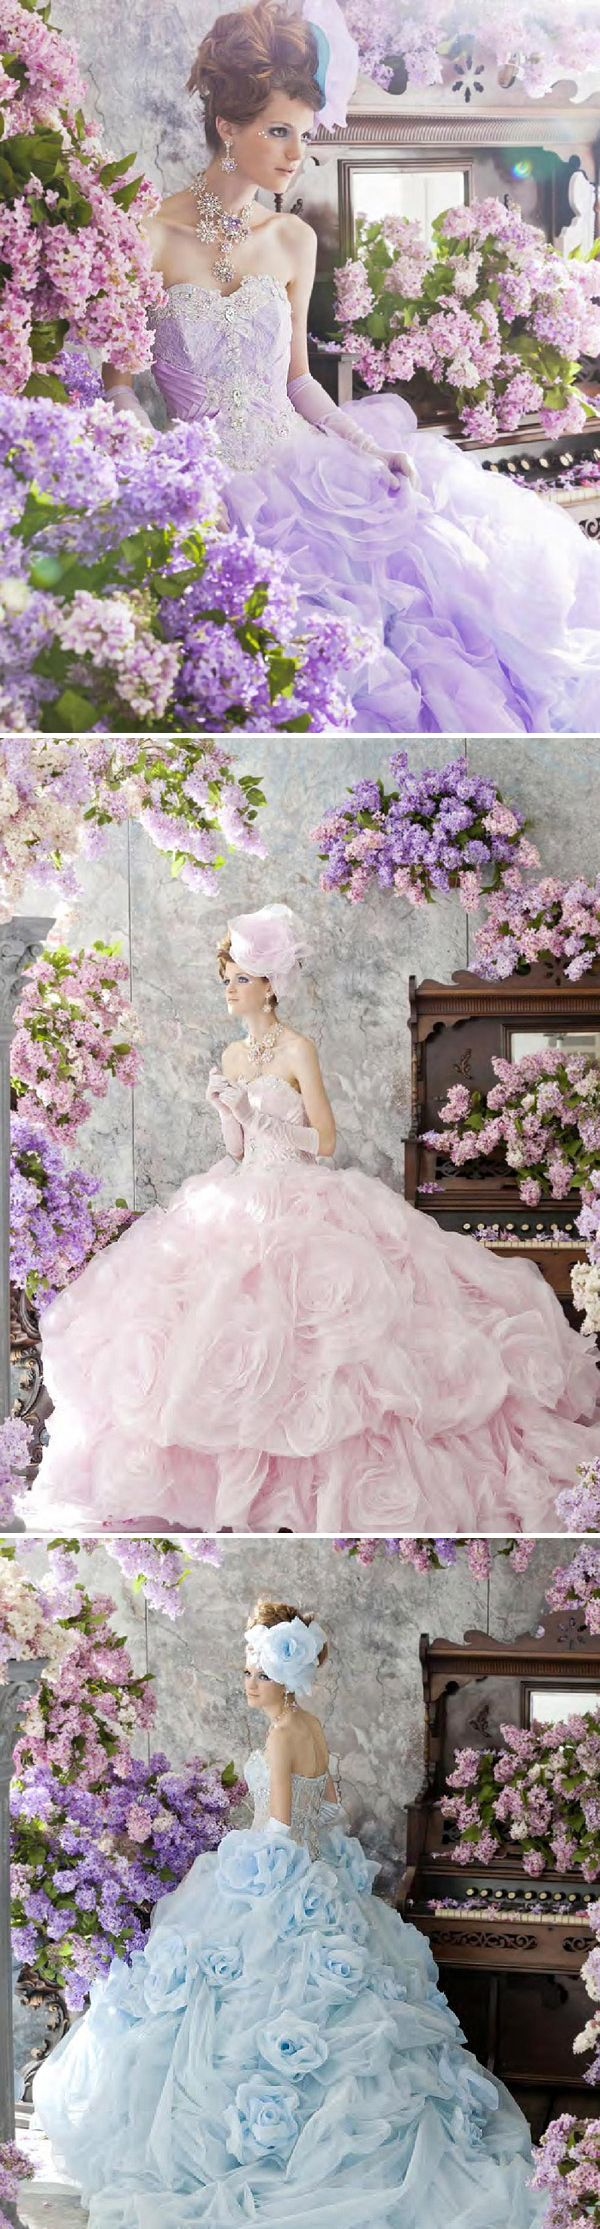 Praise Wedding » Wedding Inspiration and Planning » 21 Adorable Princess Gowns